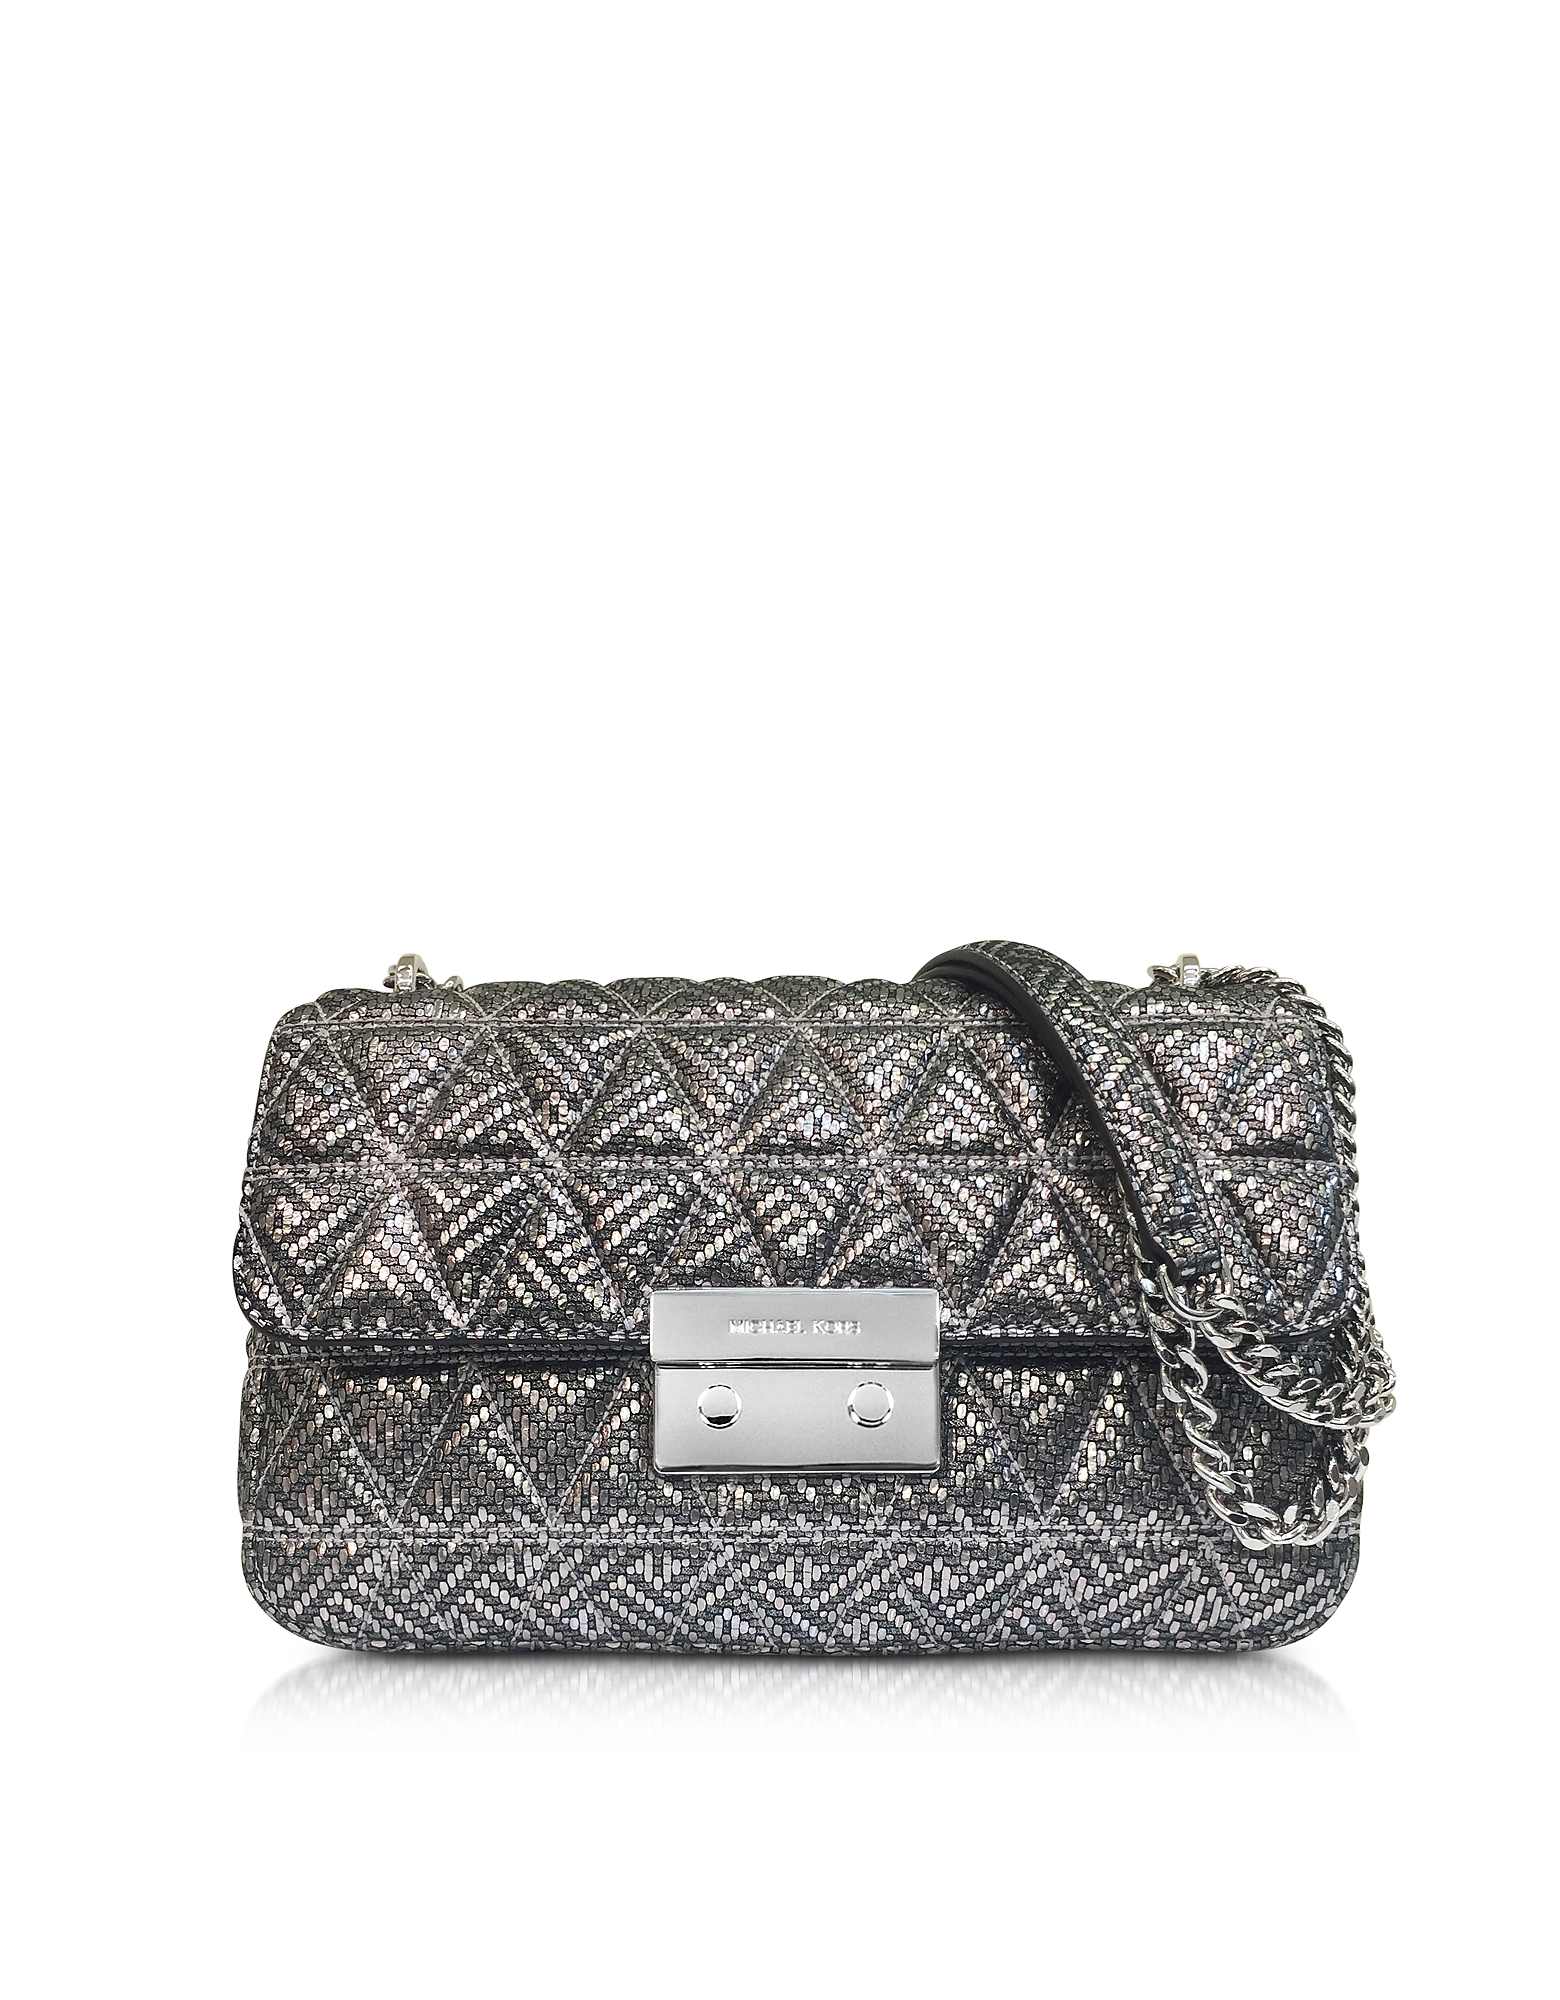 Michael Kors Handbags, Silver Quilted Leather Sloan Large Chain Shoulder Bag